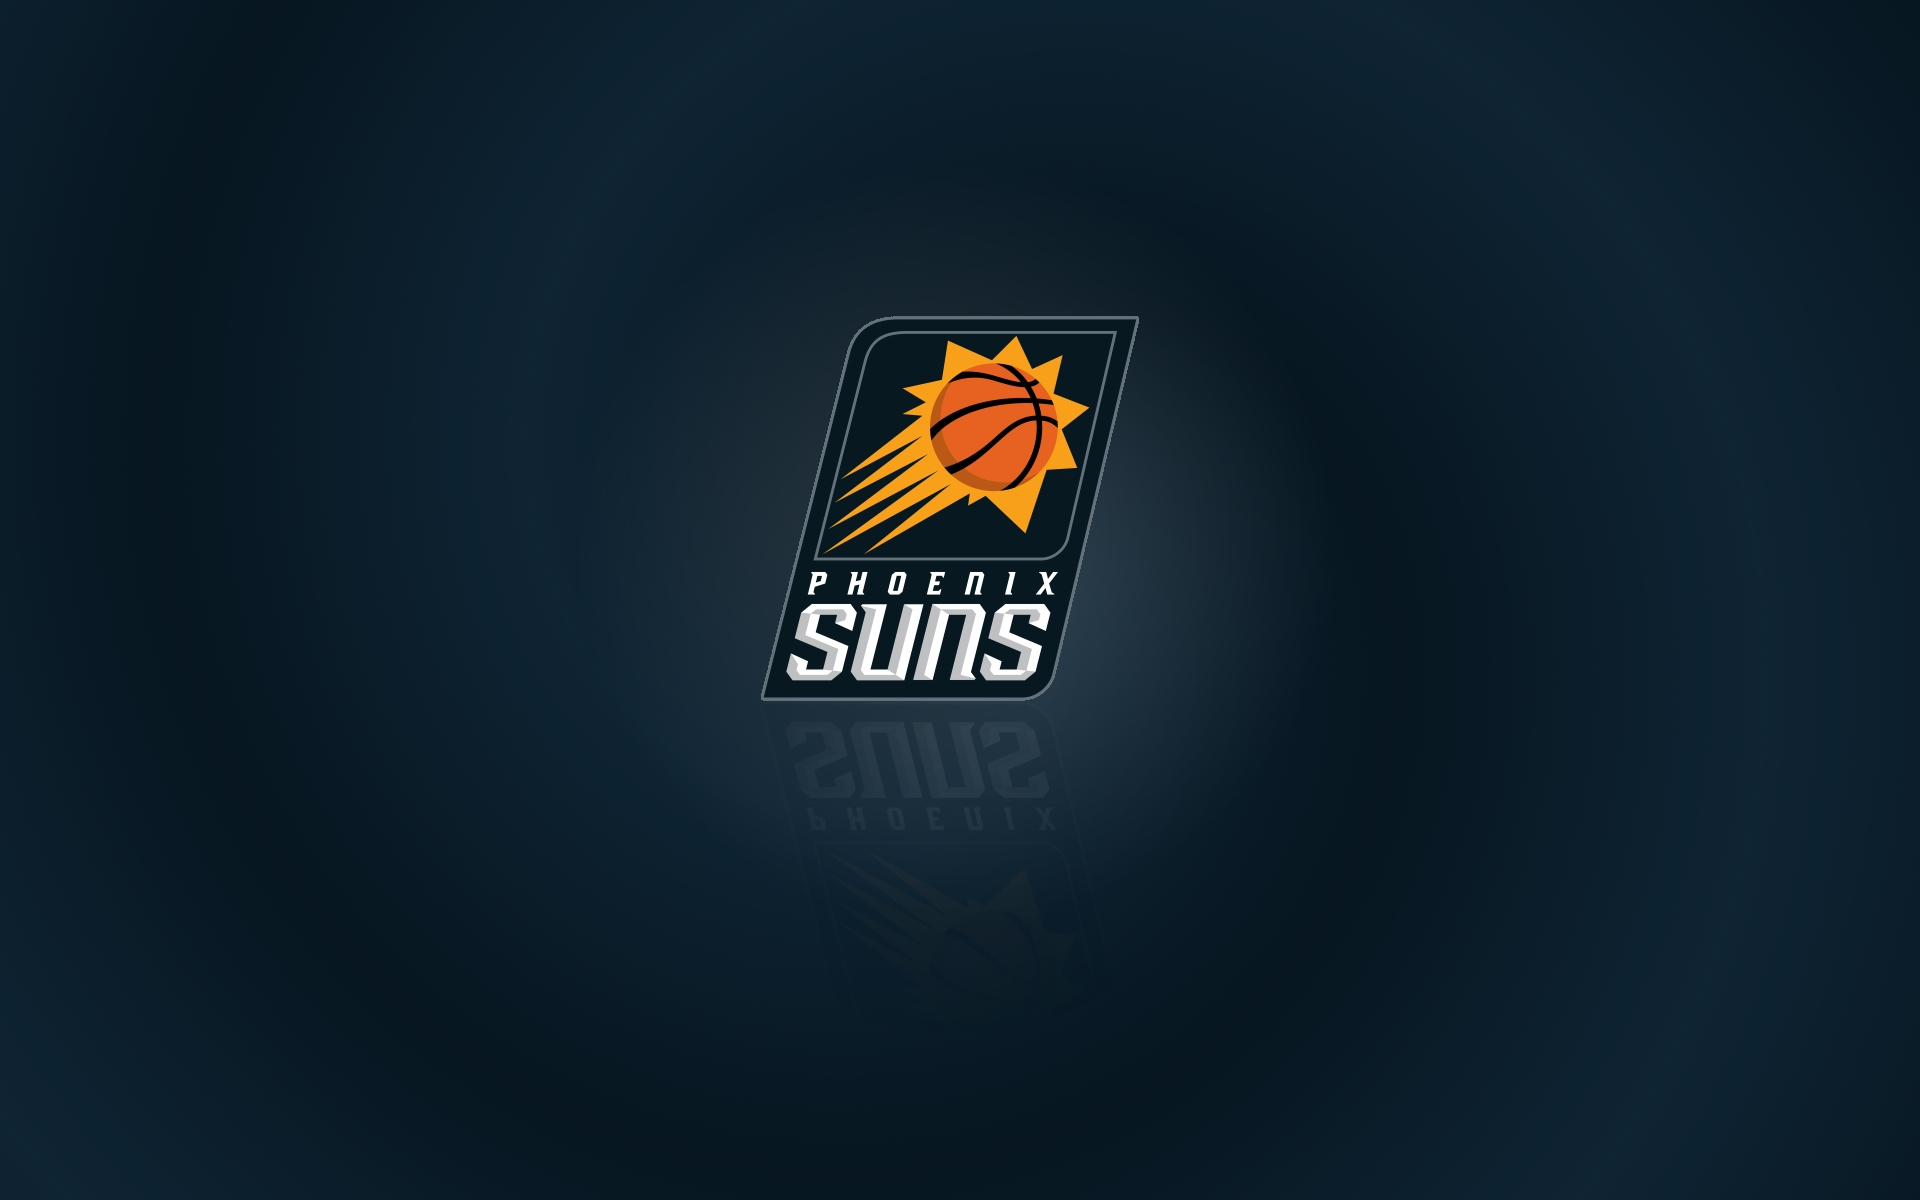 phoenix suns logos download